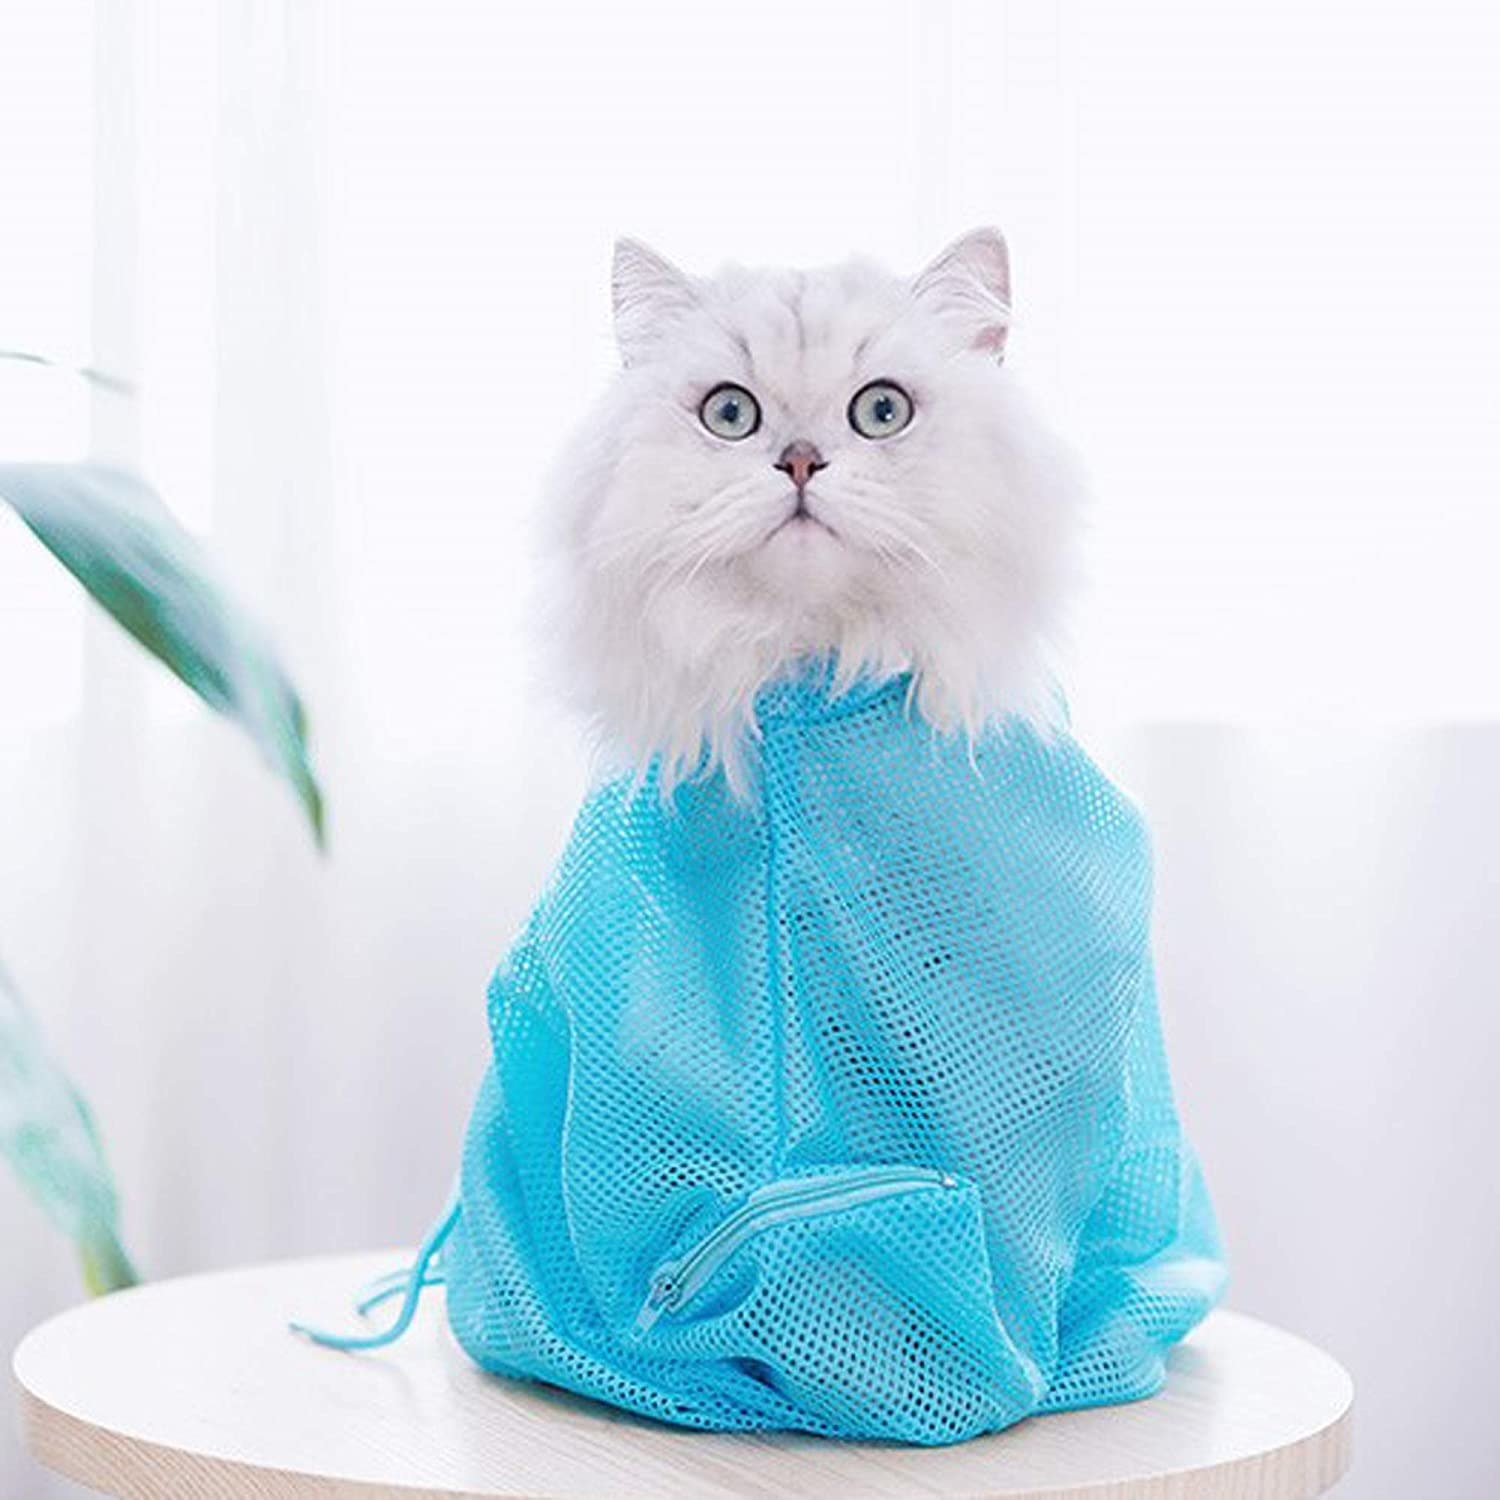 a long hair cat inside of a turquoise mesh shower bag